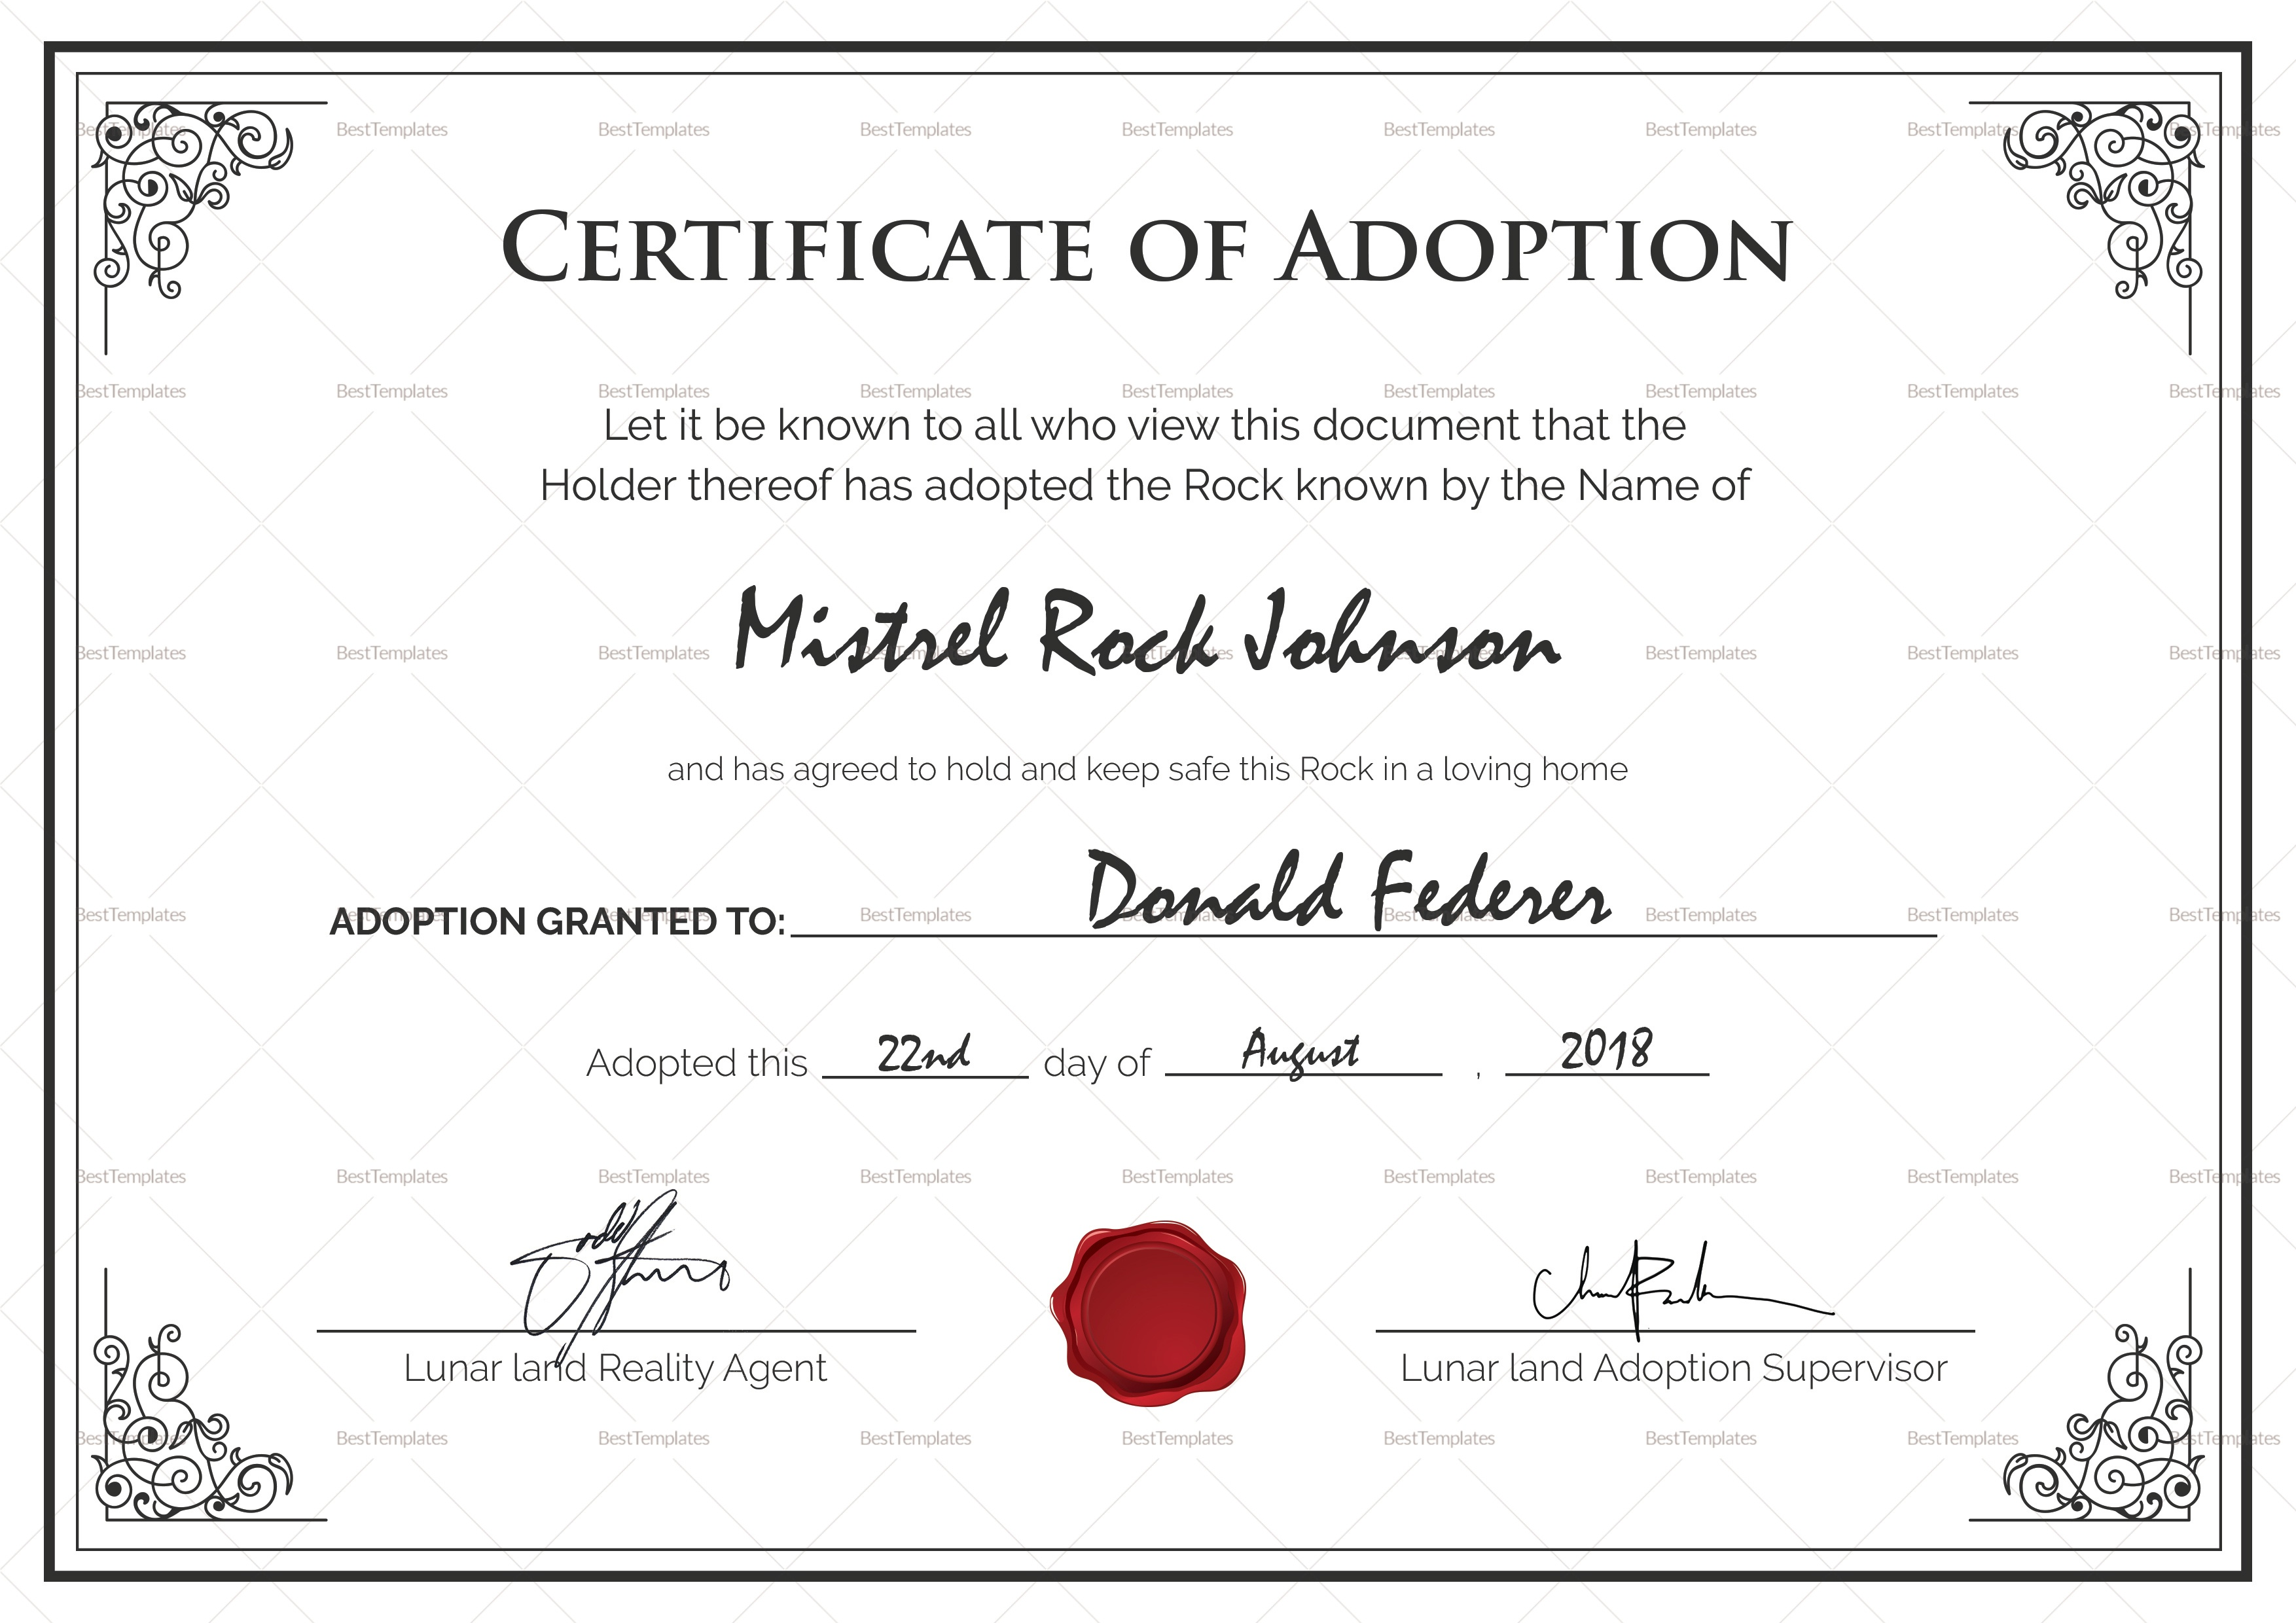 Blank Adoption Certificate Template - Demir.iso-Consulting.co - Fake Adoption Certificate Free Printable